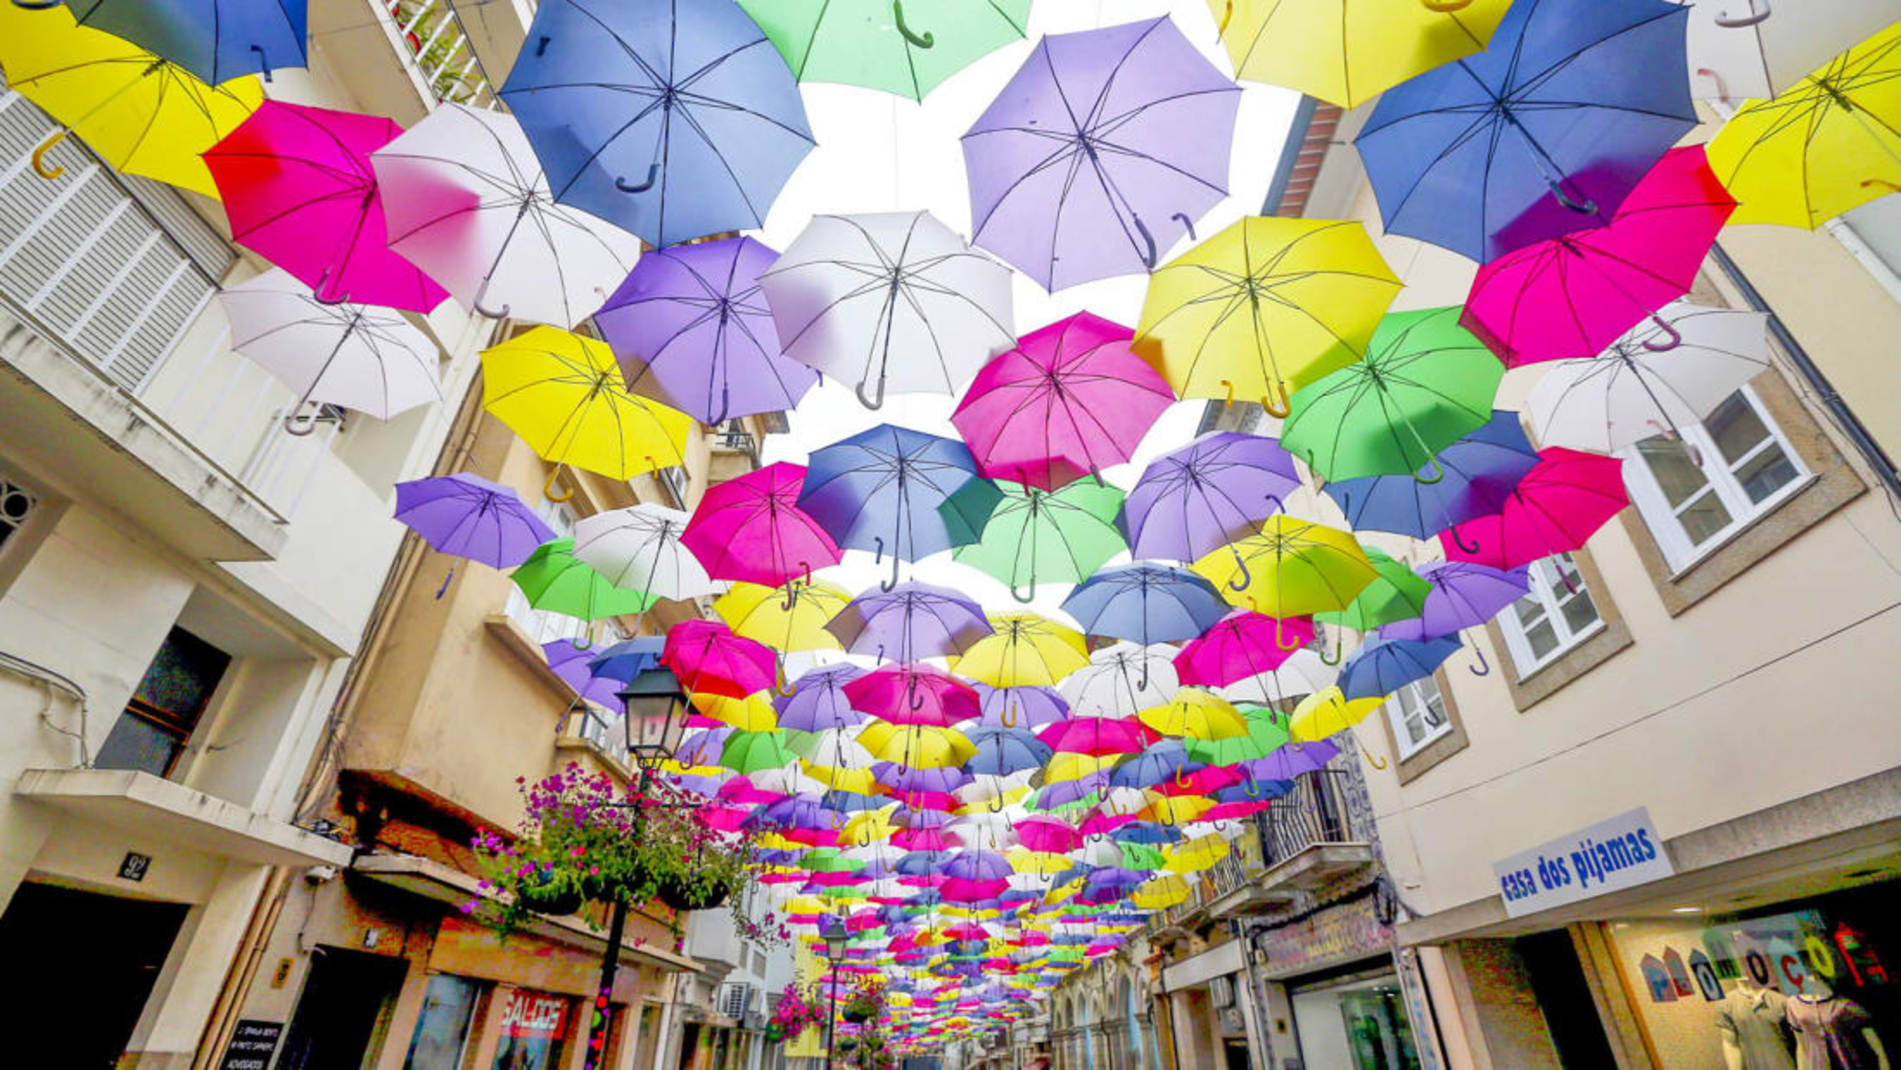 CNN - The world's most beautiful streets